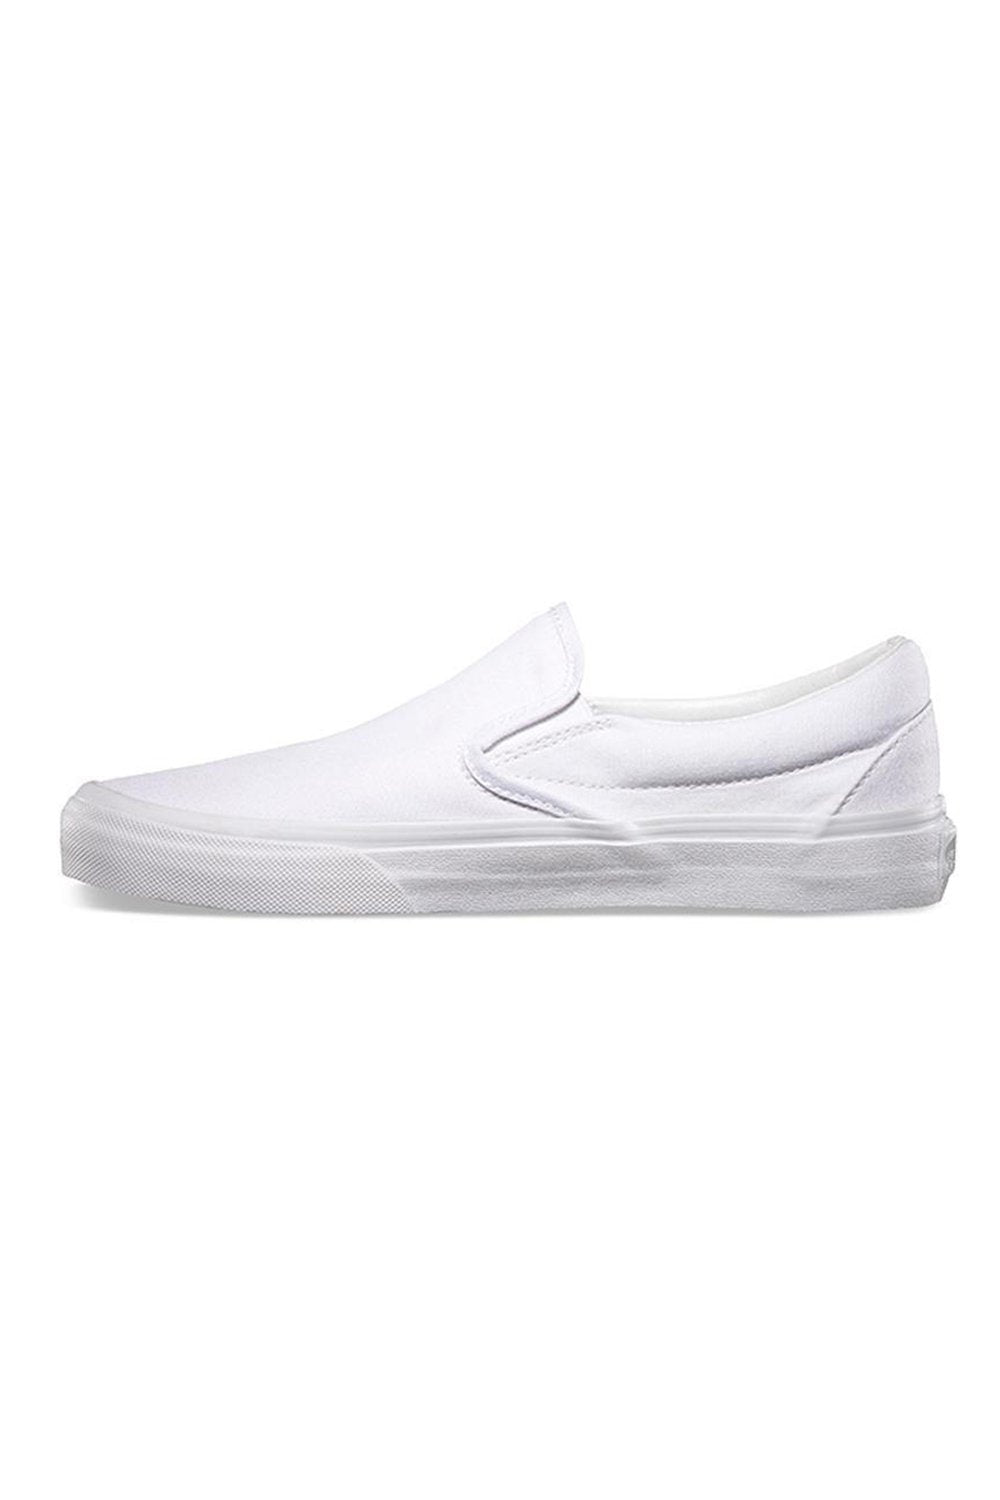 Vans Classic Slip On (CSO) True White Shoe